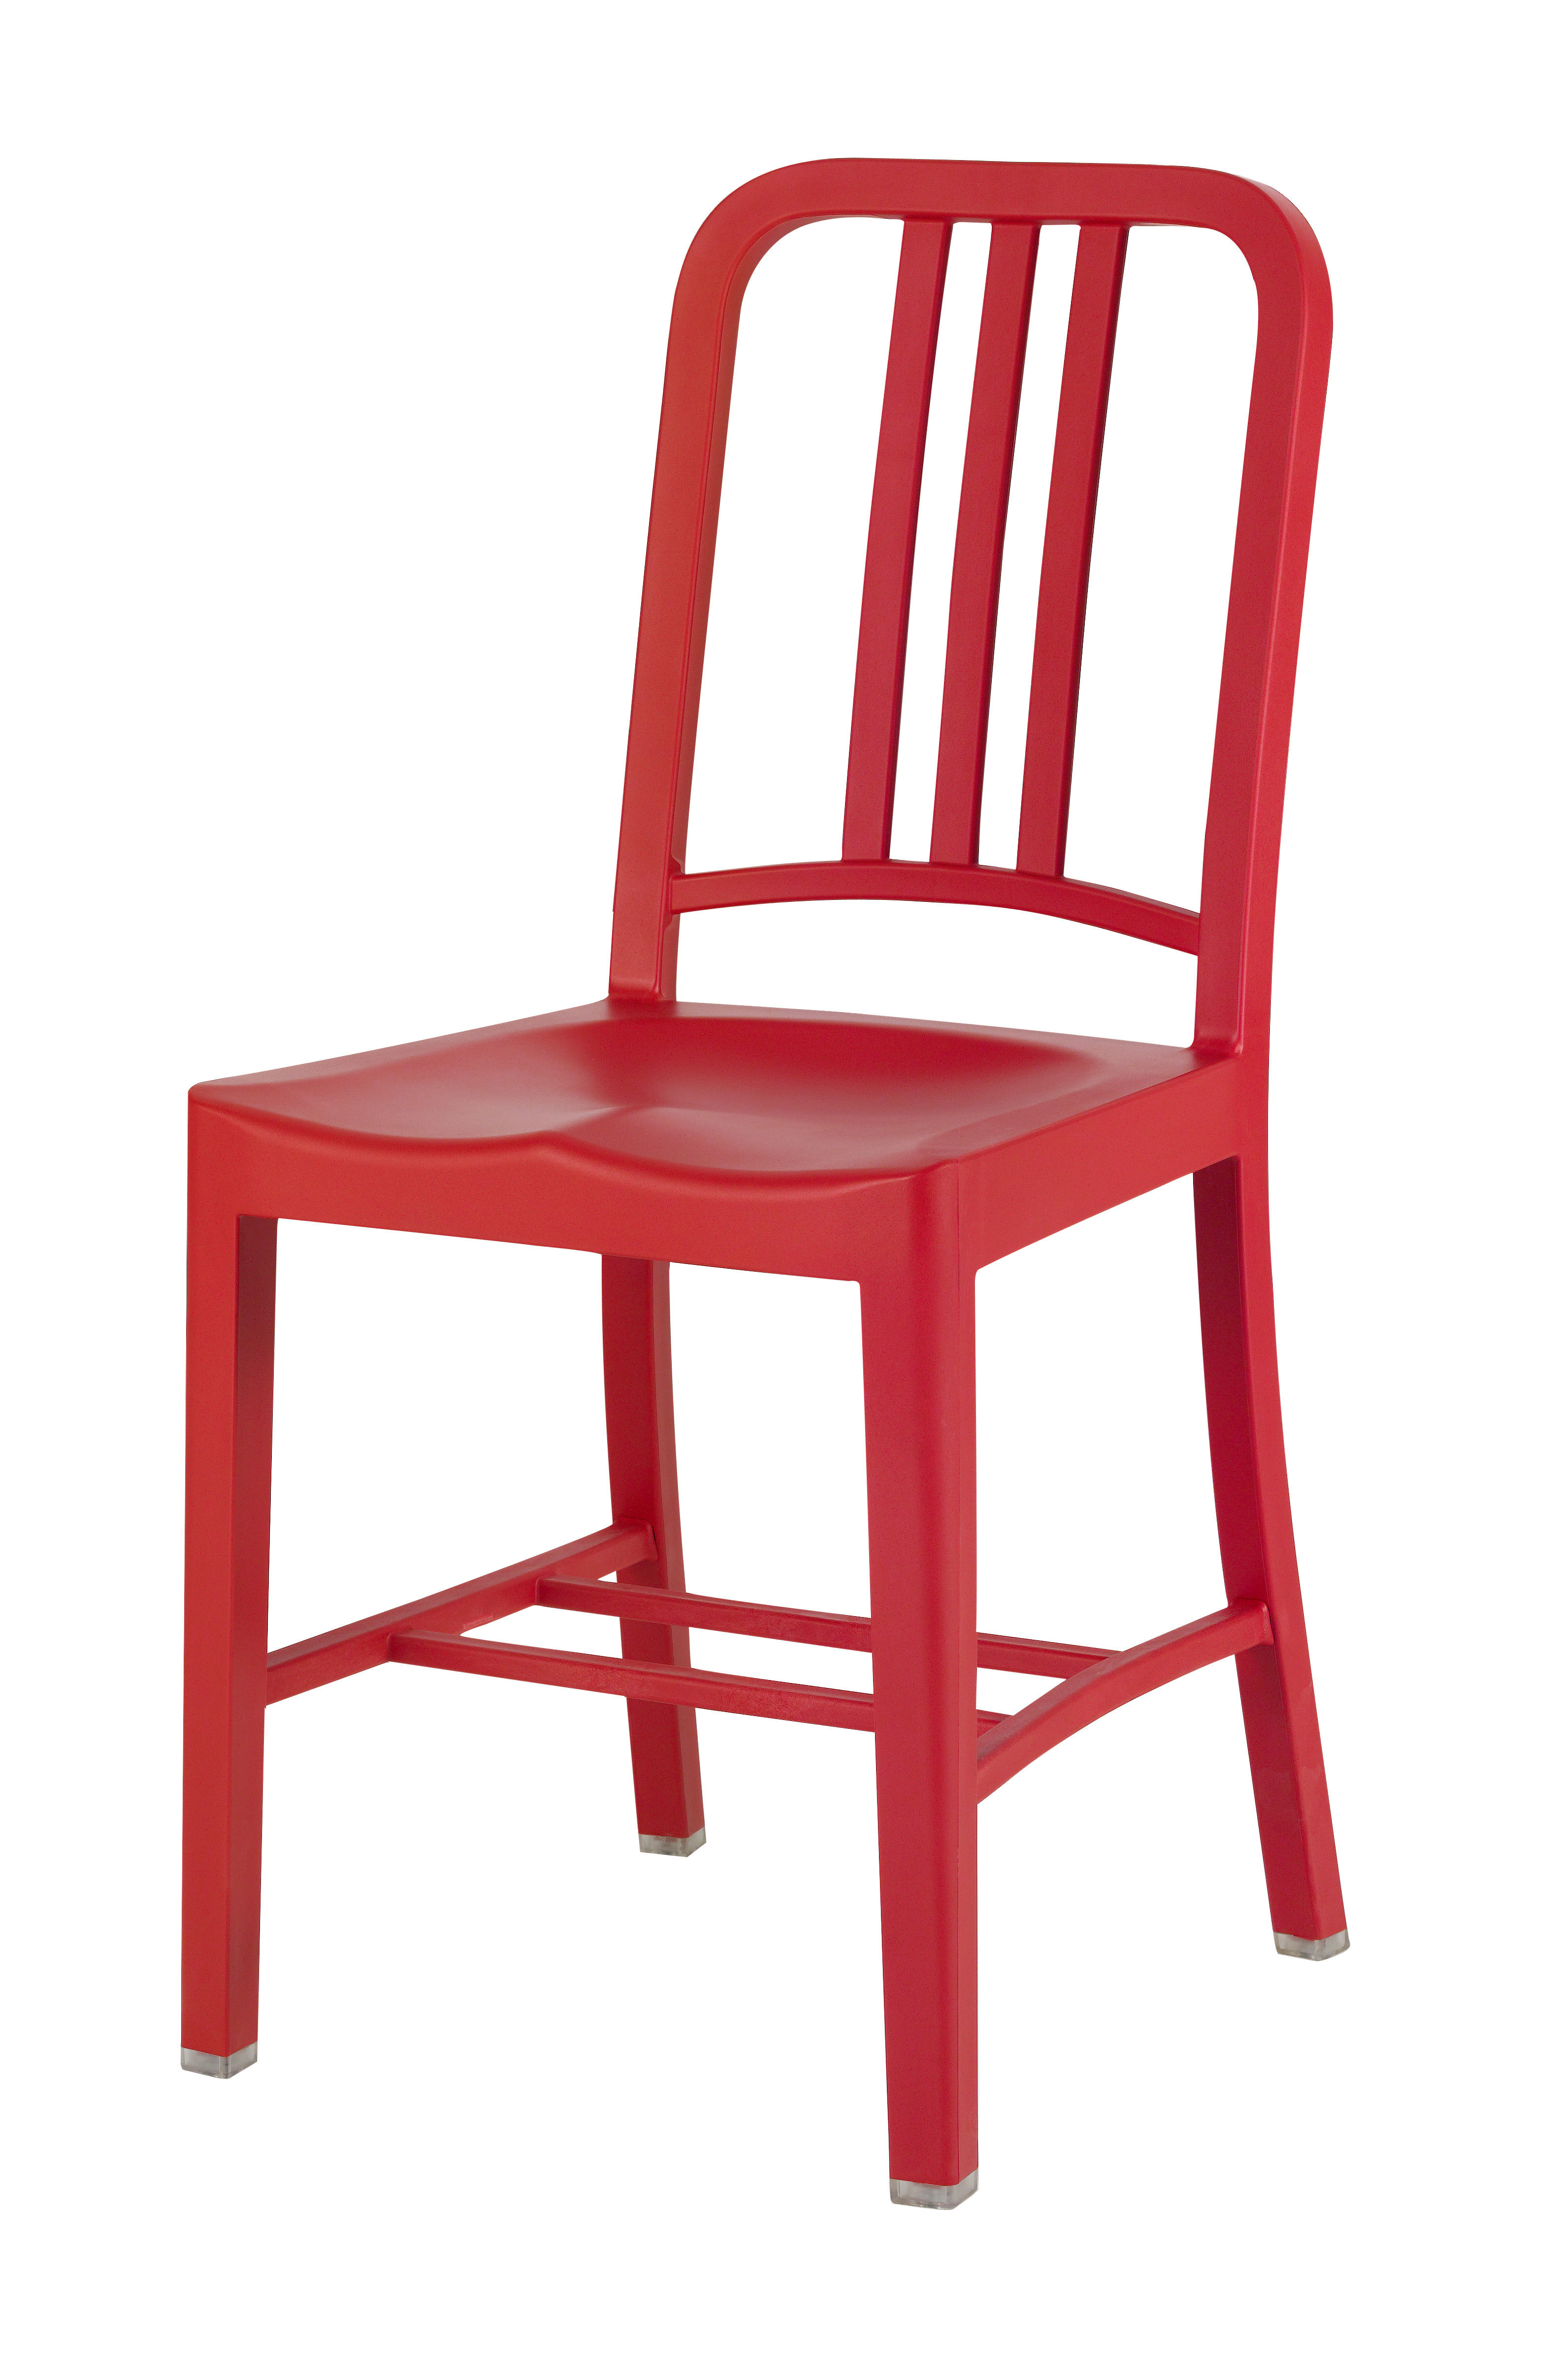 Möbel - Stühle  - 111 Navy chair Outdoor Stuhl - Emeco - Rot - Glasfaser